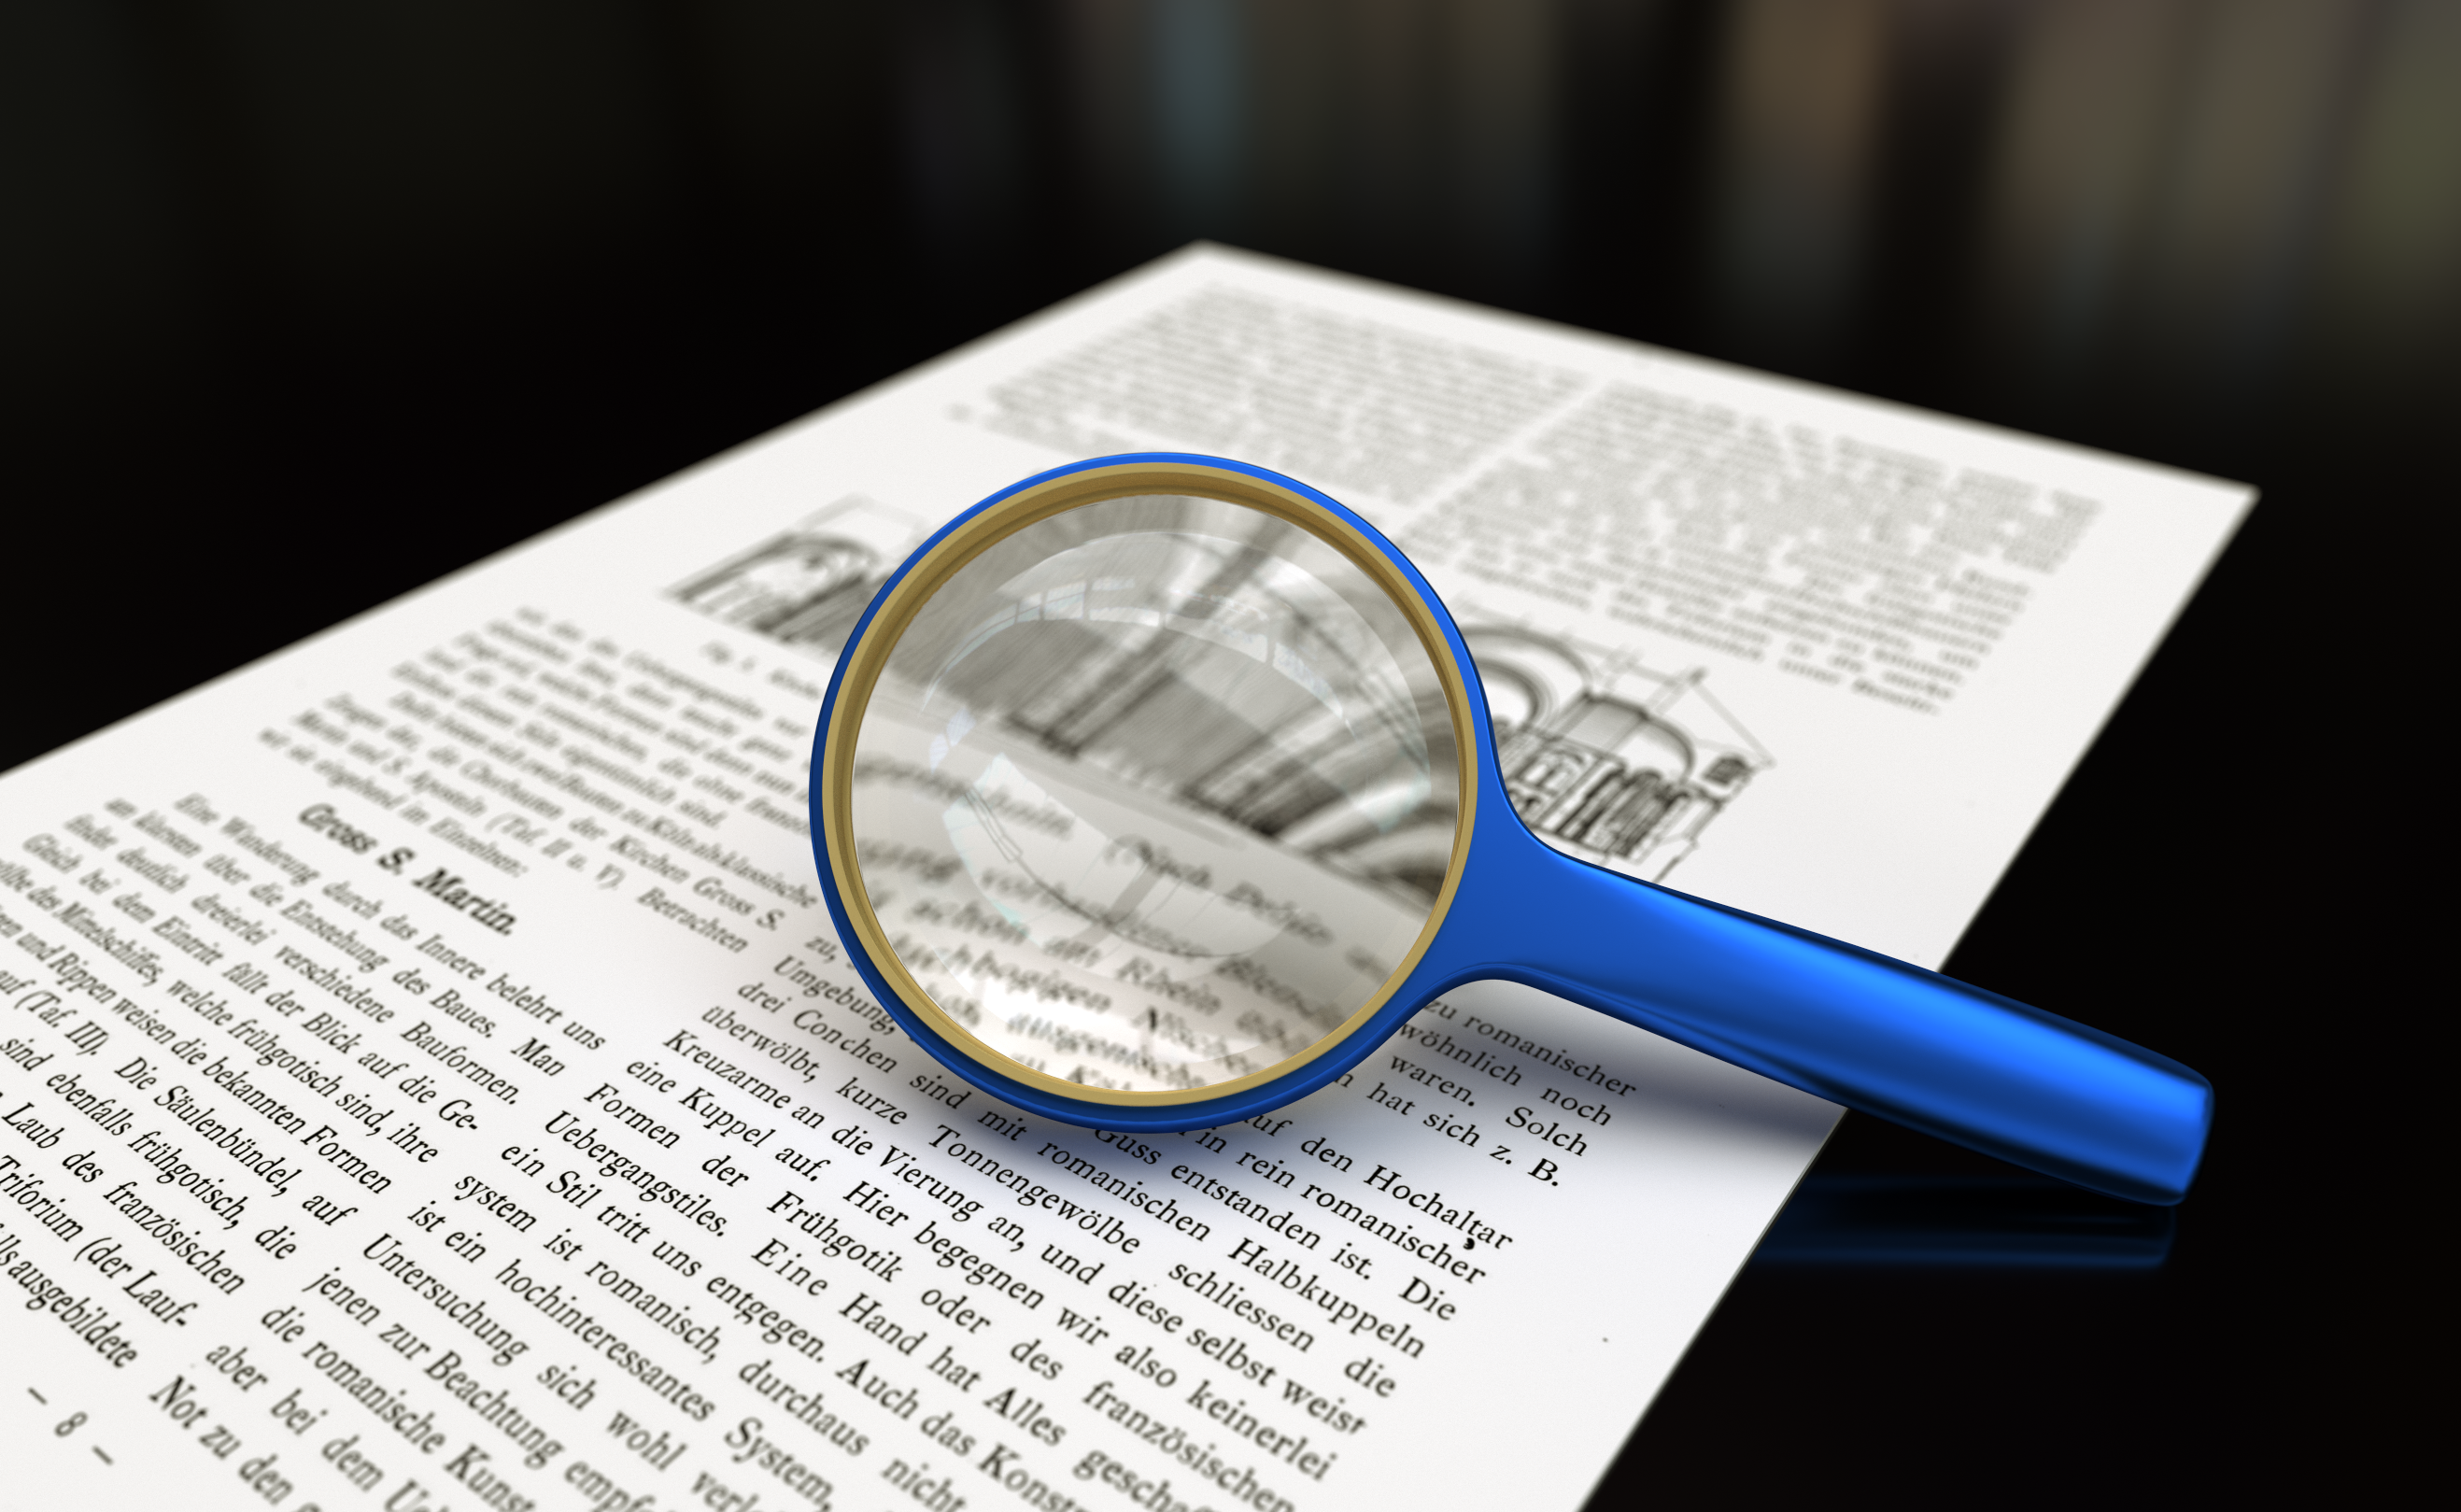 Magnifying glass showing close up text.